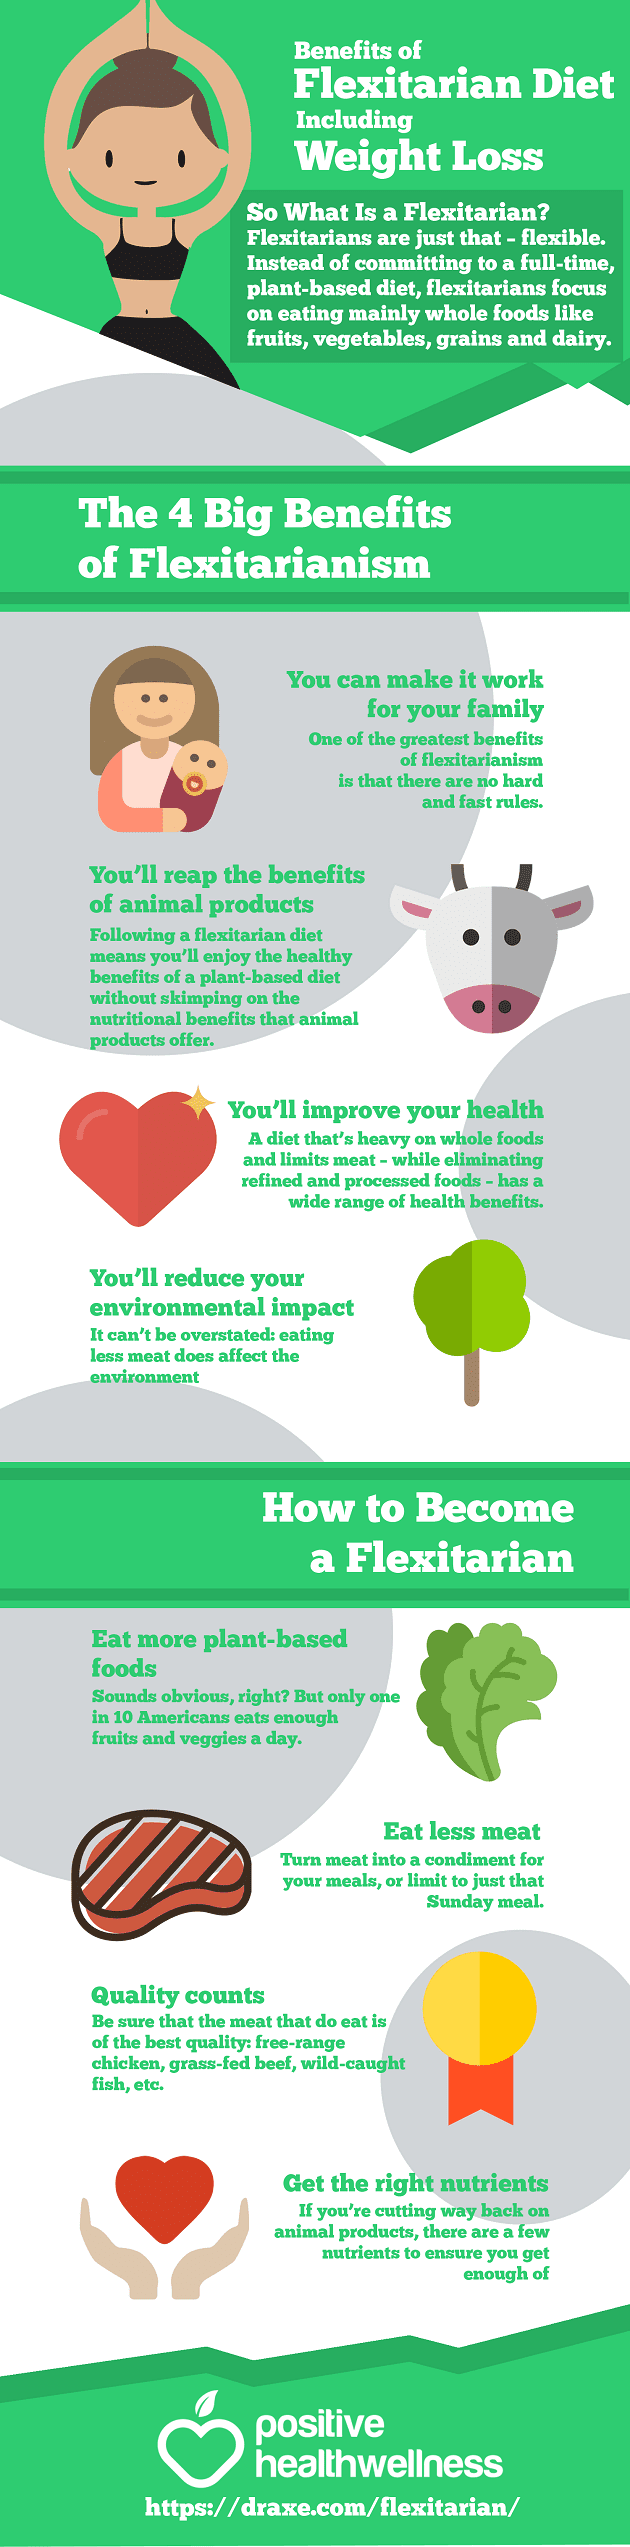 Benefits of the Flexitarian Diet, Including Weight Loss #infographic #Diet #Flexitarian Diet #Infographics #Weight Loss